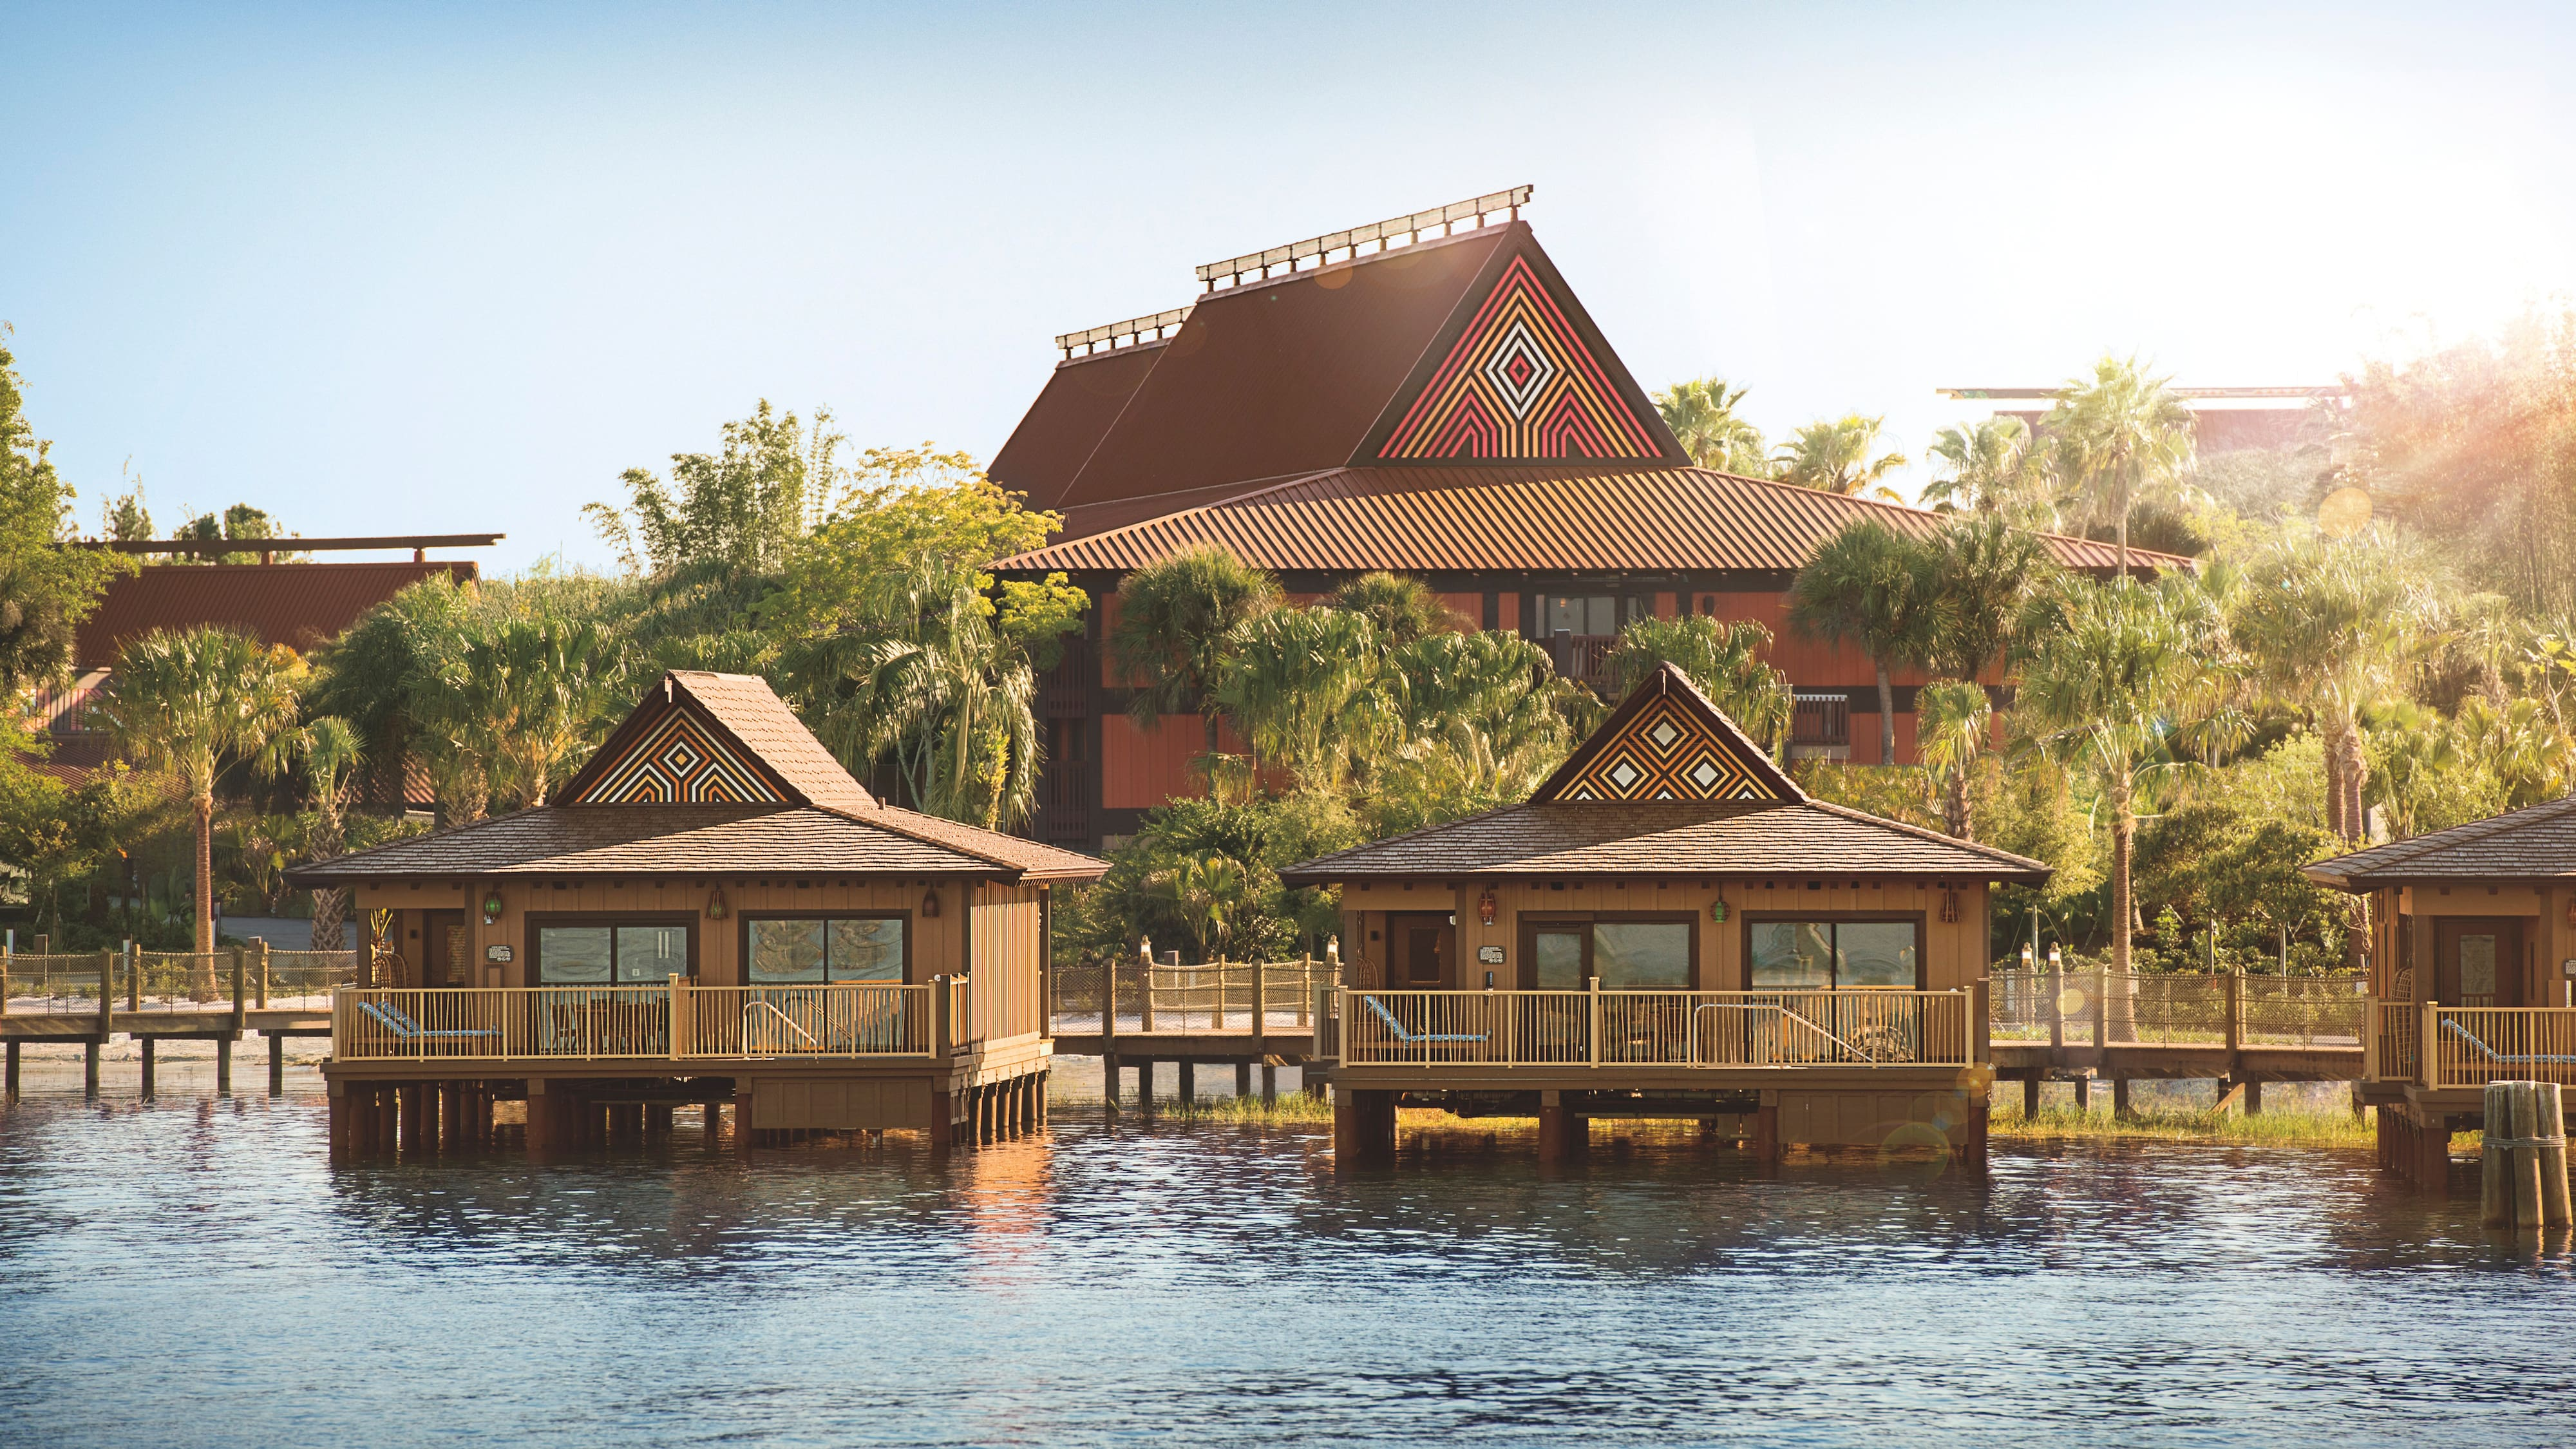 Disney's Polynesian Villas & Bungalows on the shores of Seven Seas Lagoon